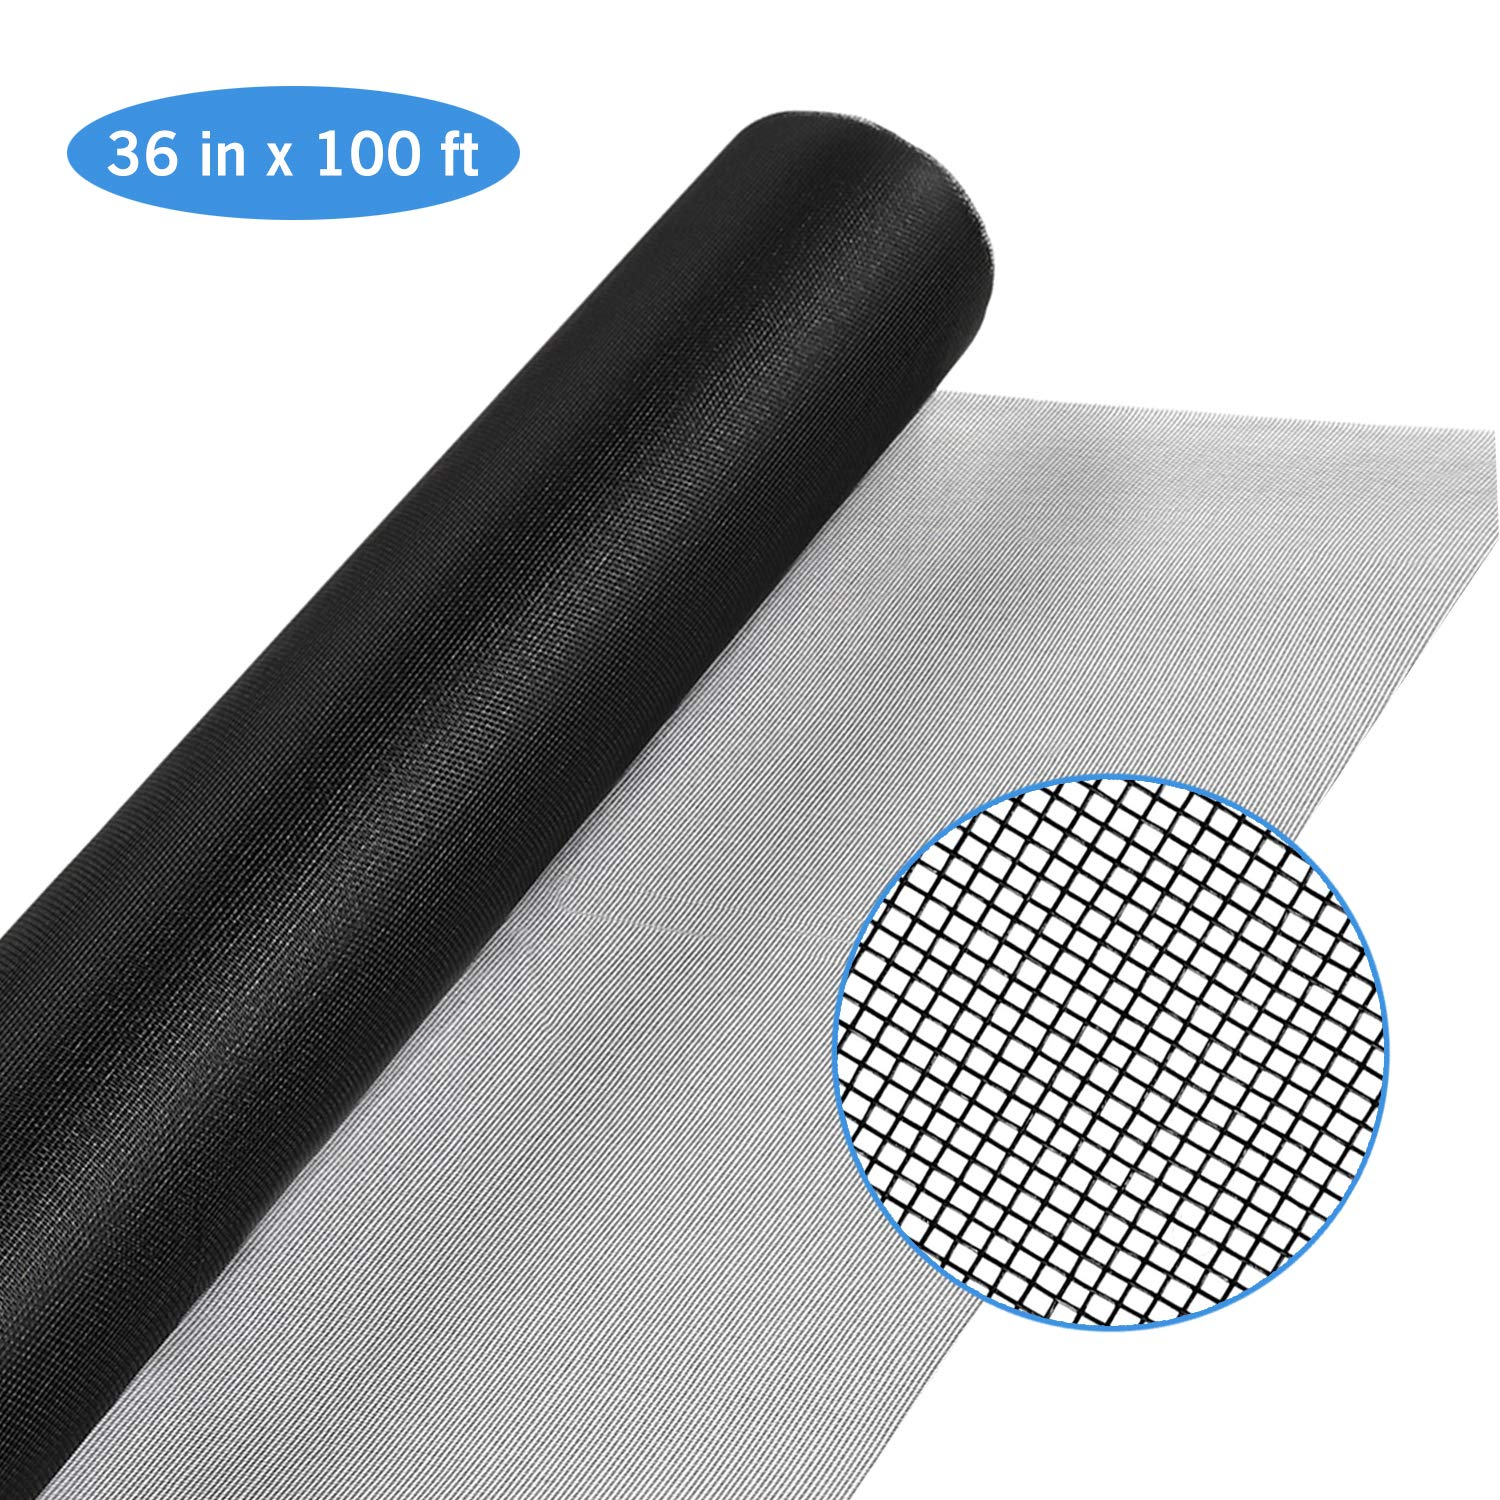 Magicfly Fiberglass Screen Roll, 36 Inch x 100 Feet Window Mesh Screen for Window, Door and Patio, Screen Protection, Patio Screens by Magicfly